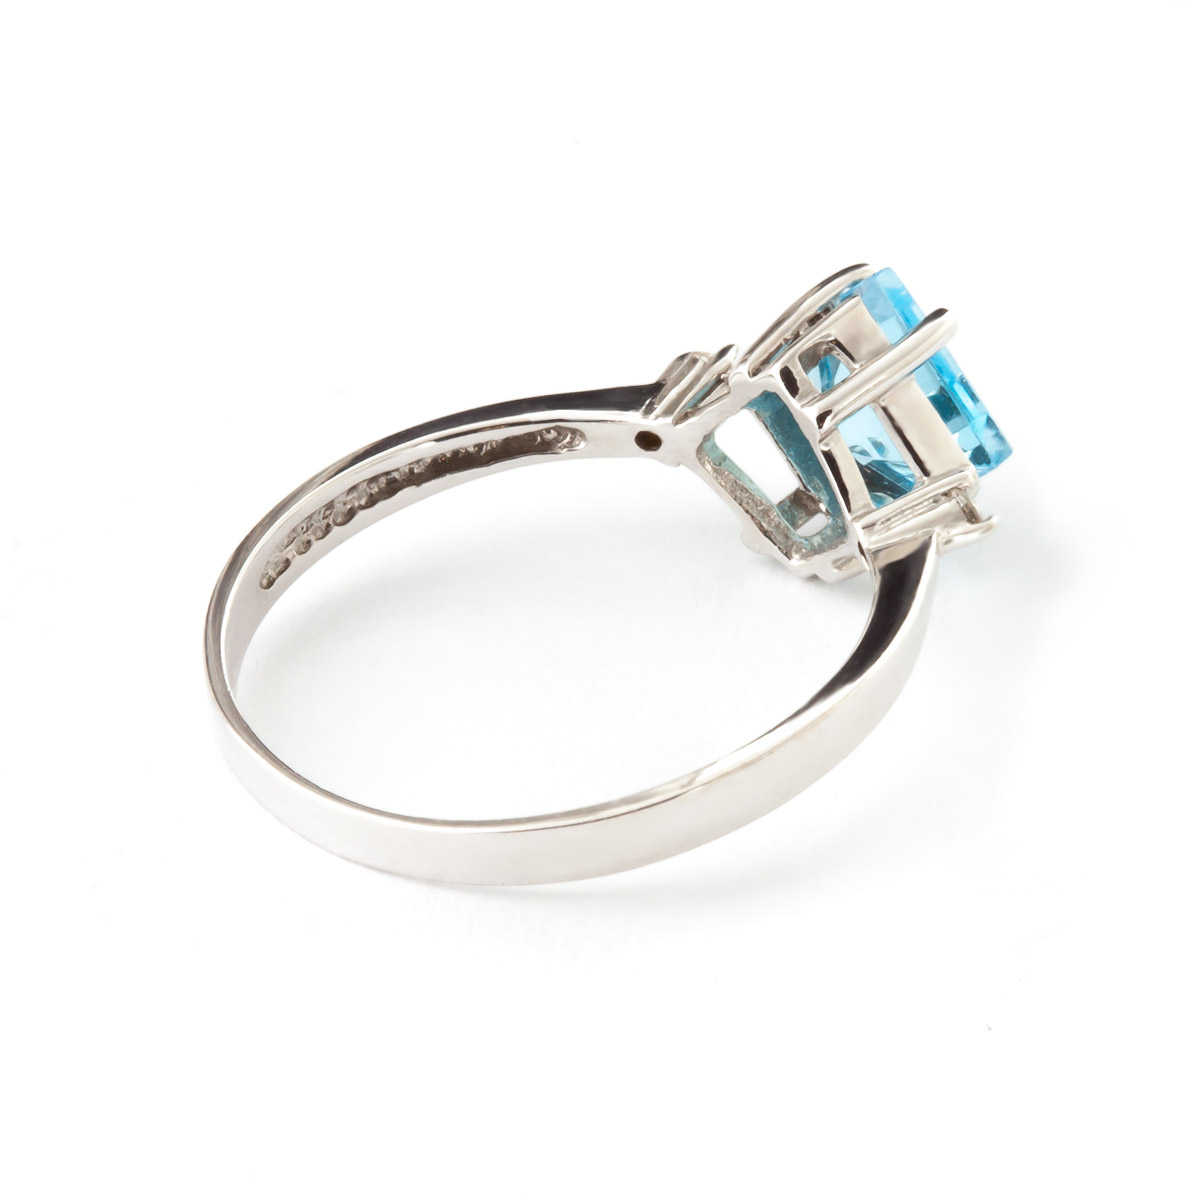 Blue Topaz and Diamond Ring 1.75ct in 14K White Gold